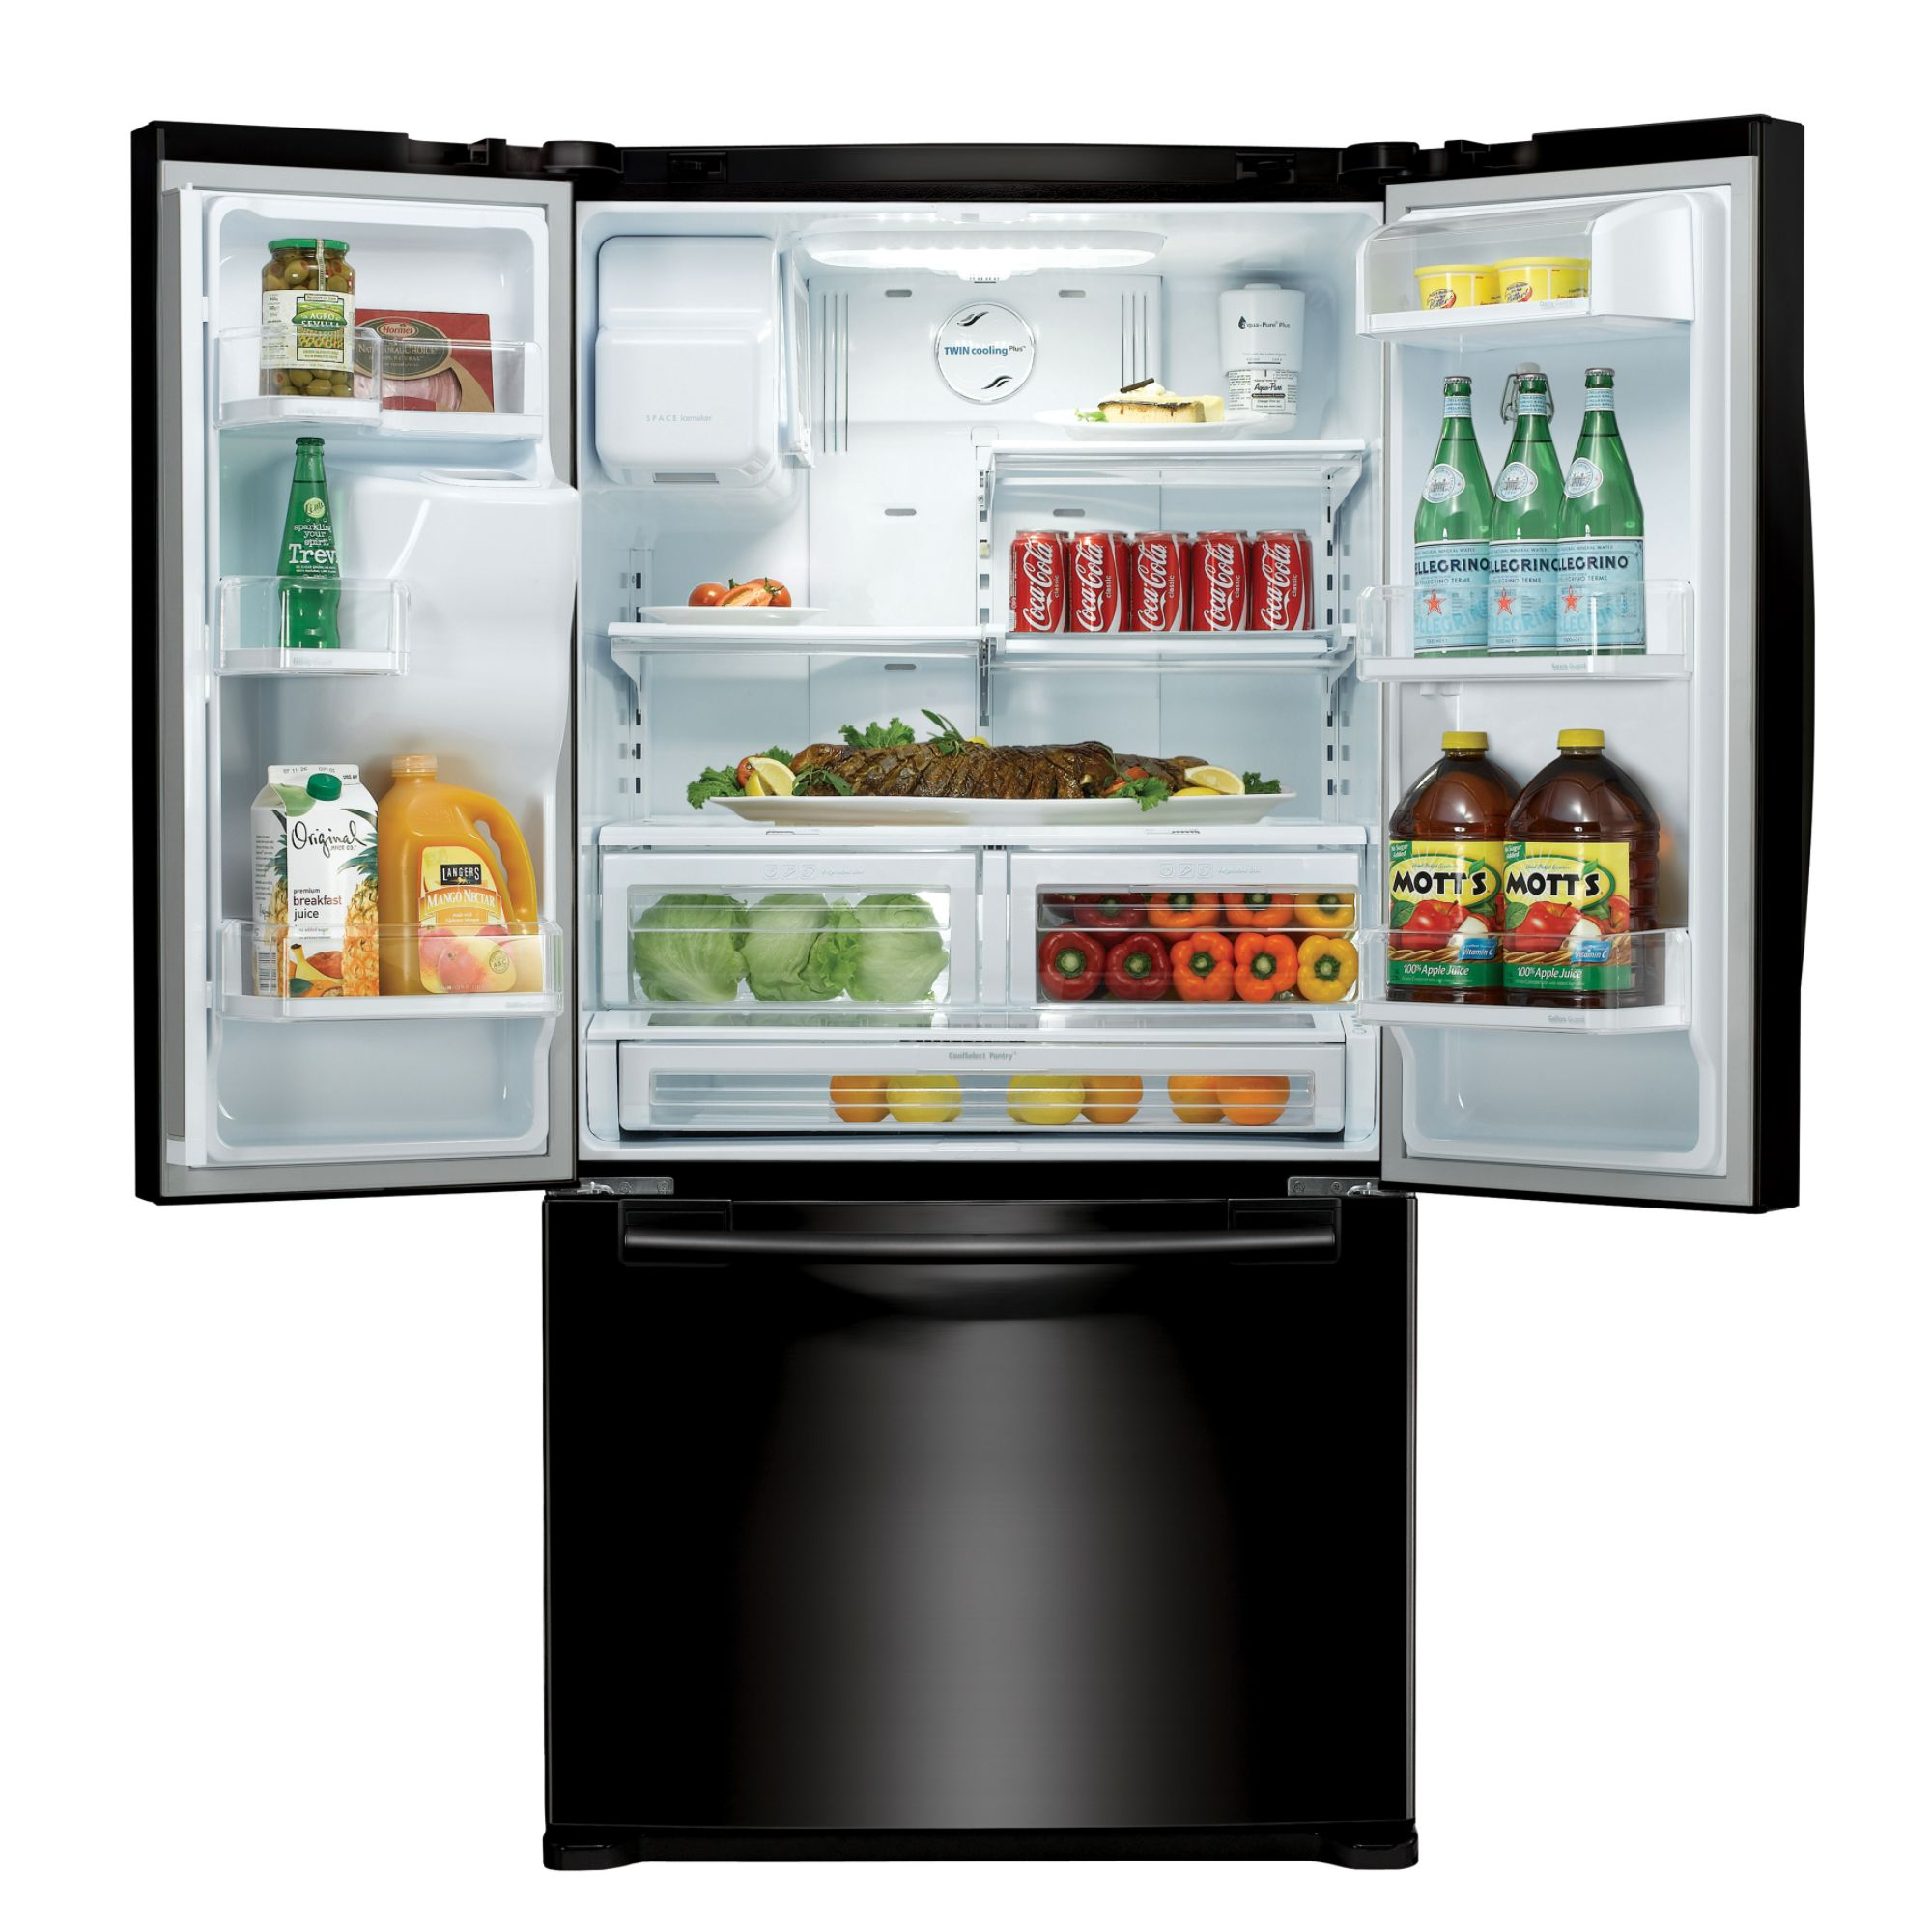 Samsung 23.0 cu. ft. Counter Depth French-Door Refrigerator  -  Black